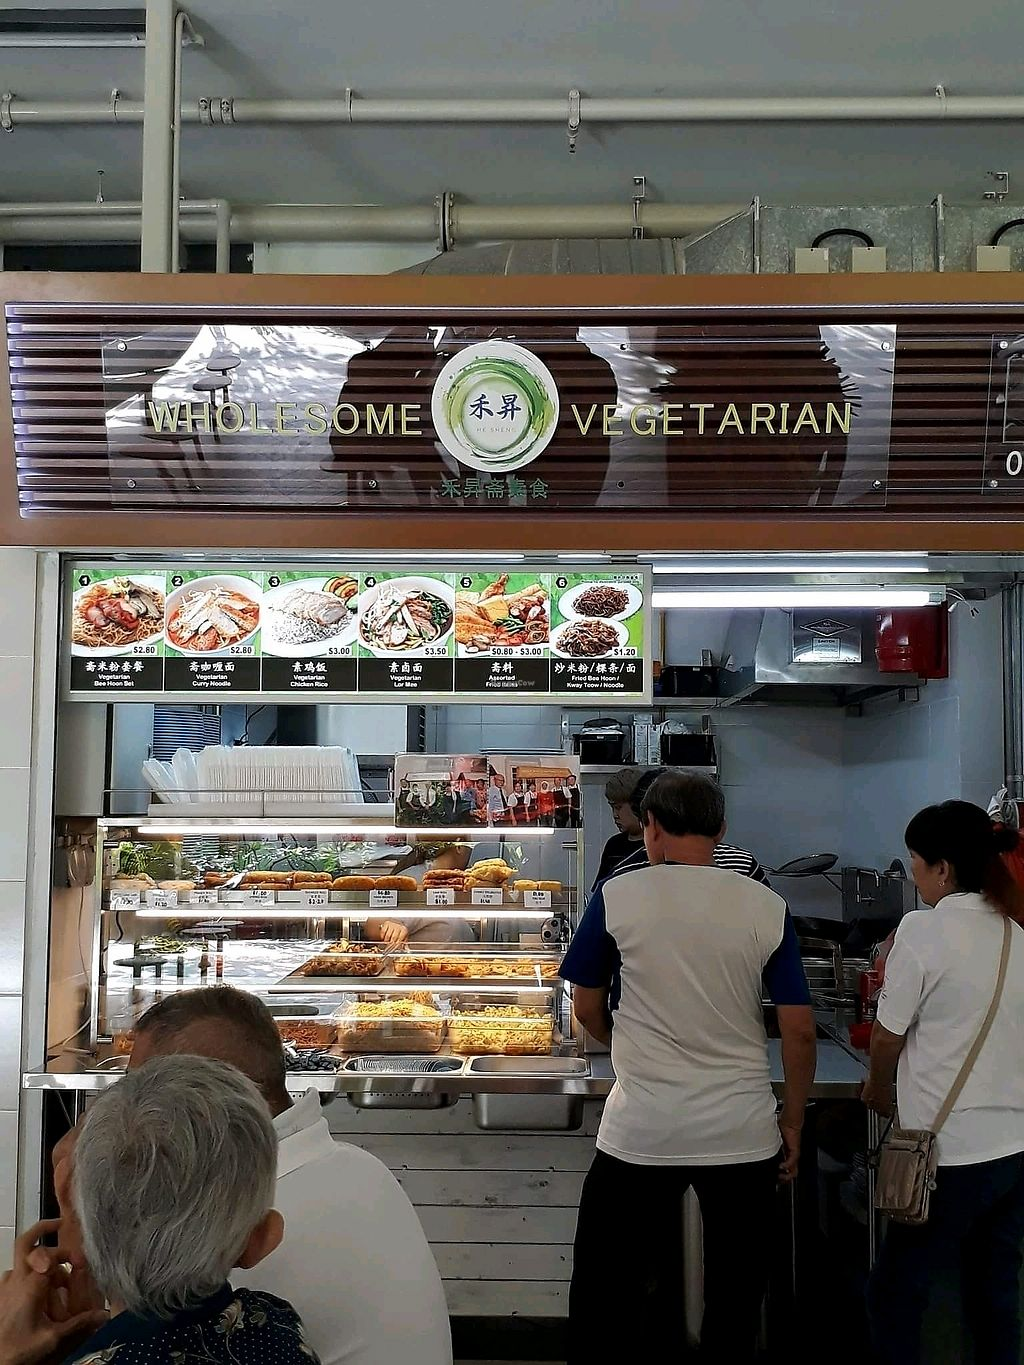 """Photo of Wholesome Vegetarian Stall  by <a href=""""/members/profile/JimmySeah"""">JimmySeah</a> <br/>stall front. photo credit to Sowmya <br/> January 24, 2018  - <a href='/contact/abuse/image/110259/350515'>Report</a>"""